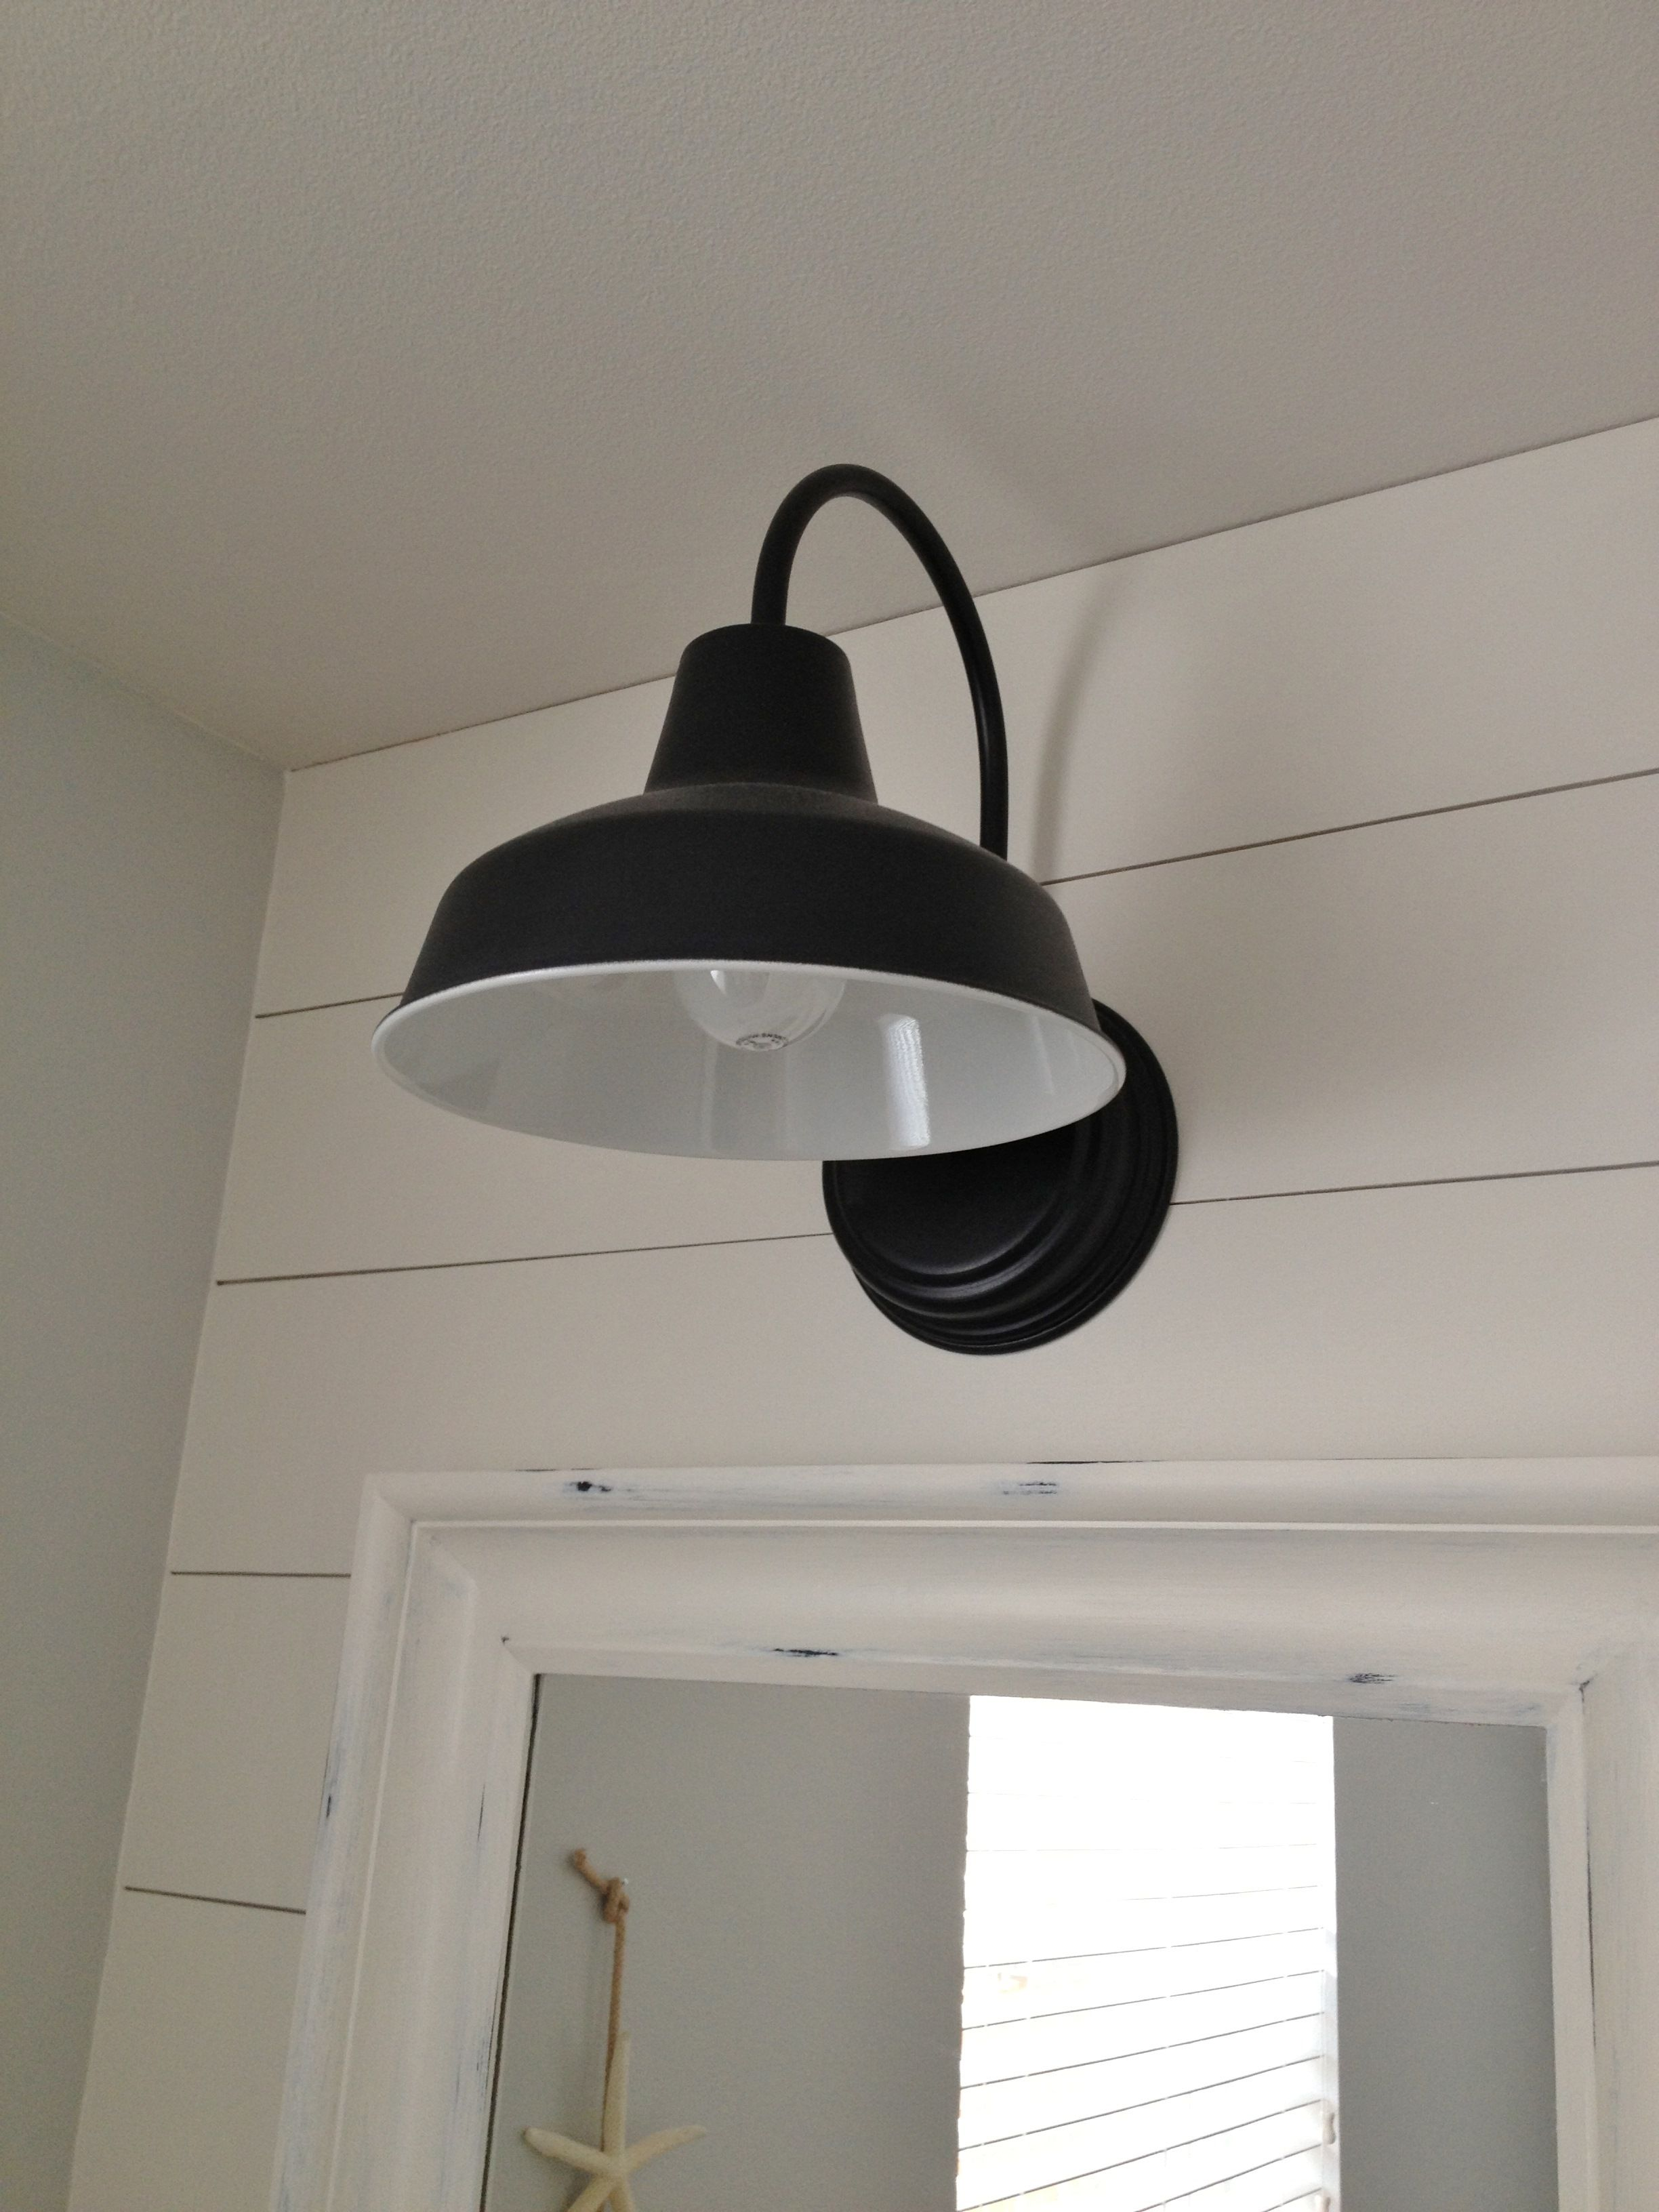 Barn wall sconce lends farmhouse look to powder room remake blog barn wall sconce lends farmhouse look to powder room remake blog barnlightelectric amipublicfo Images